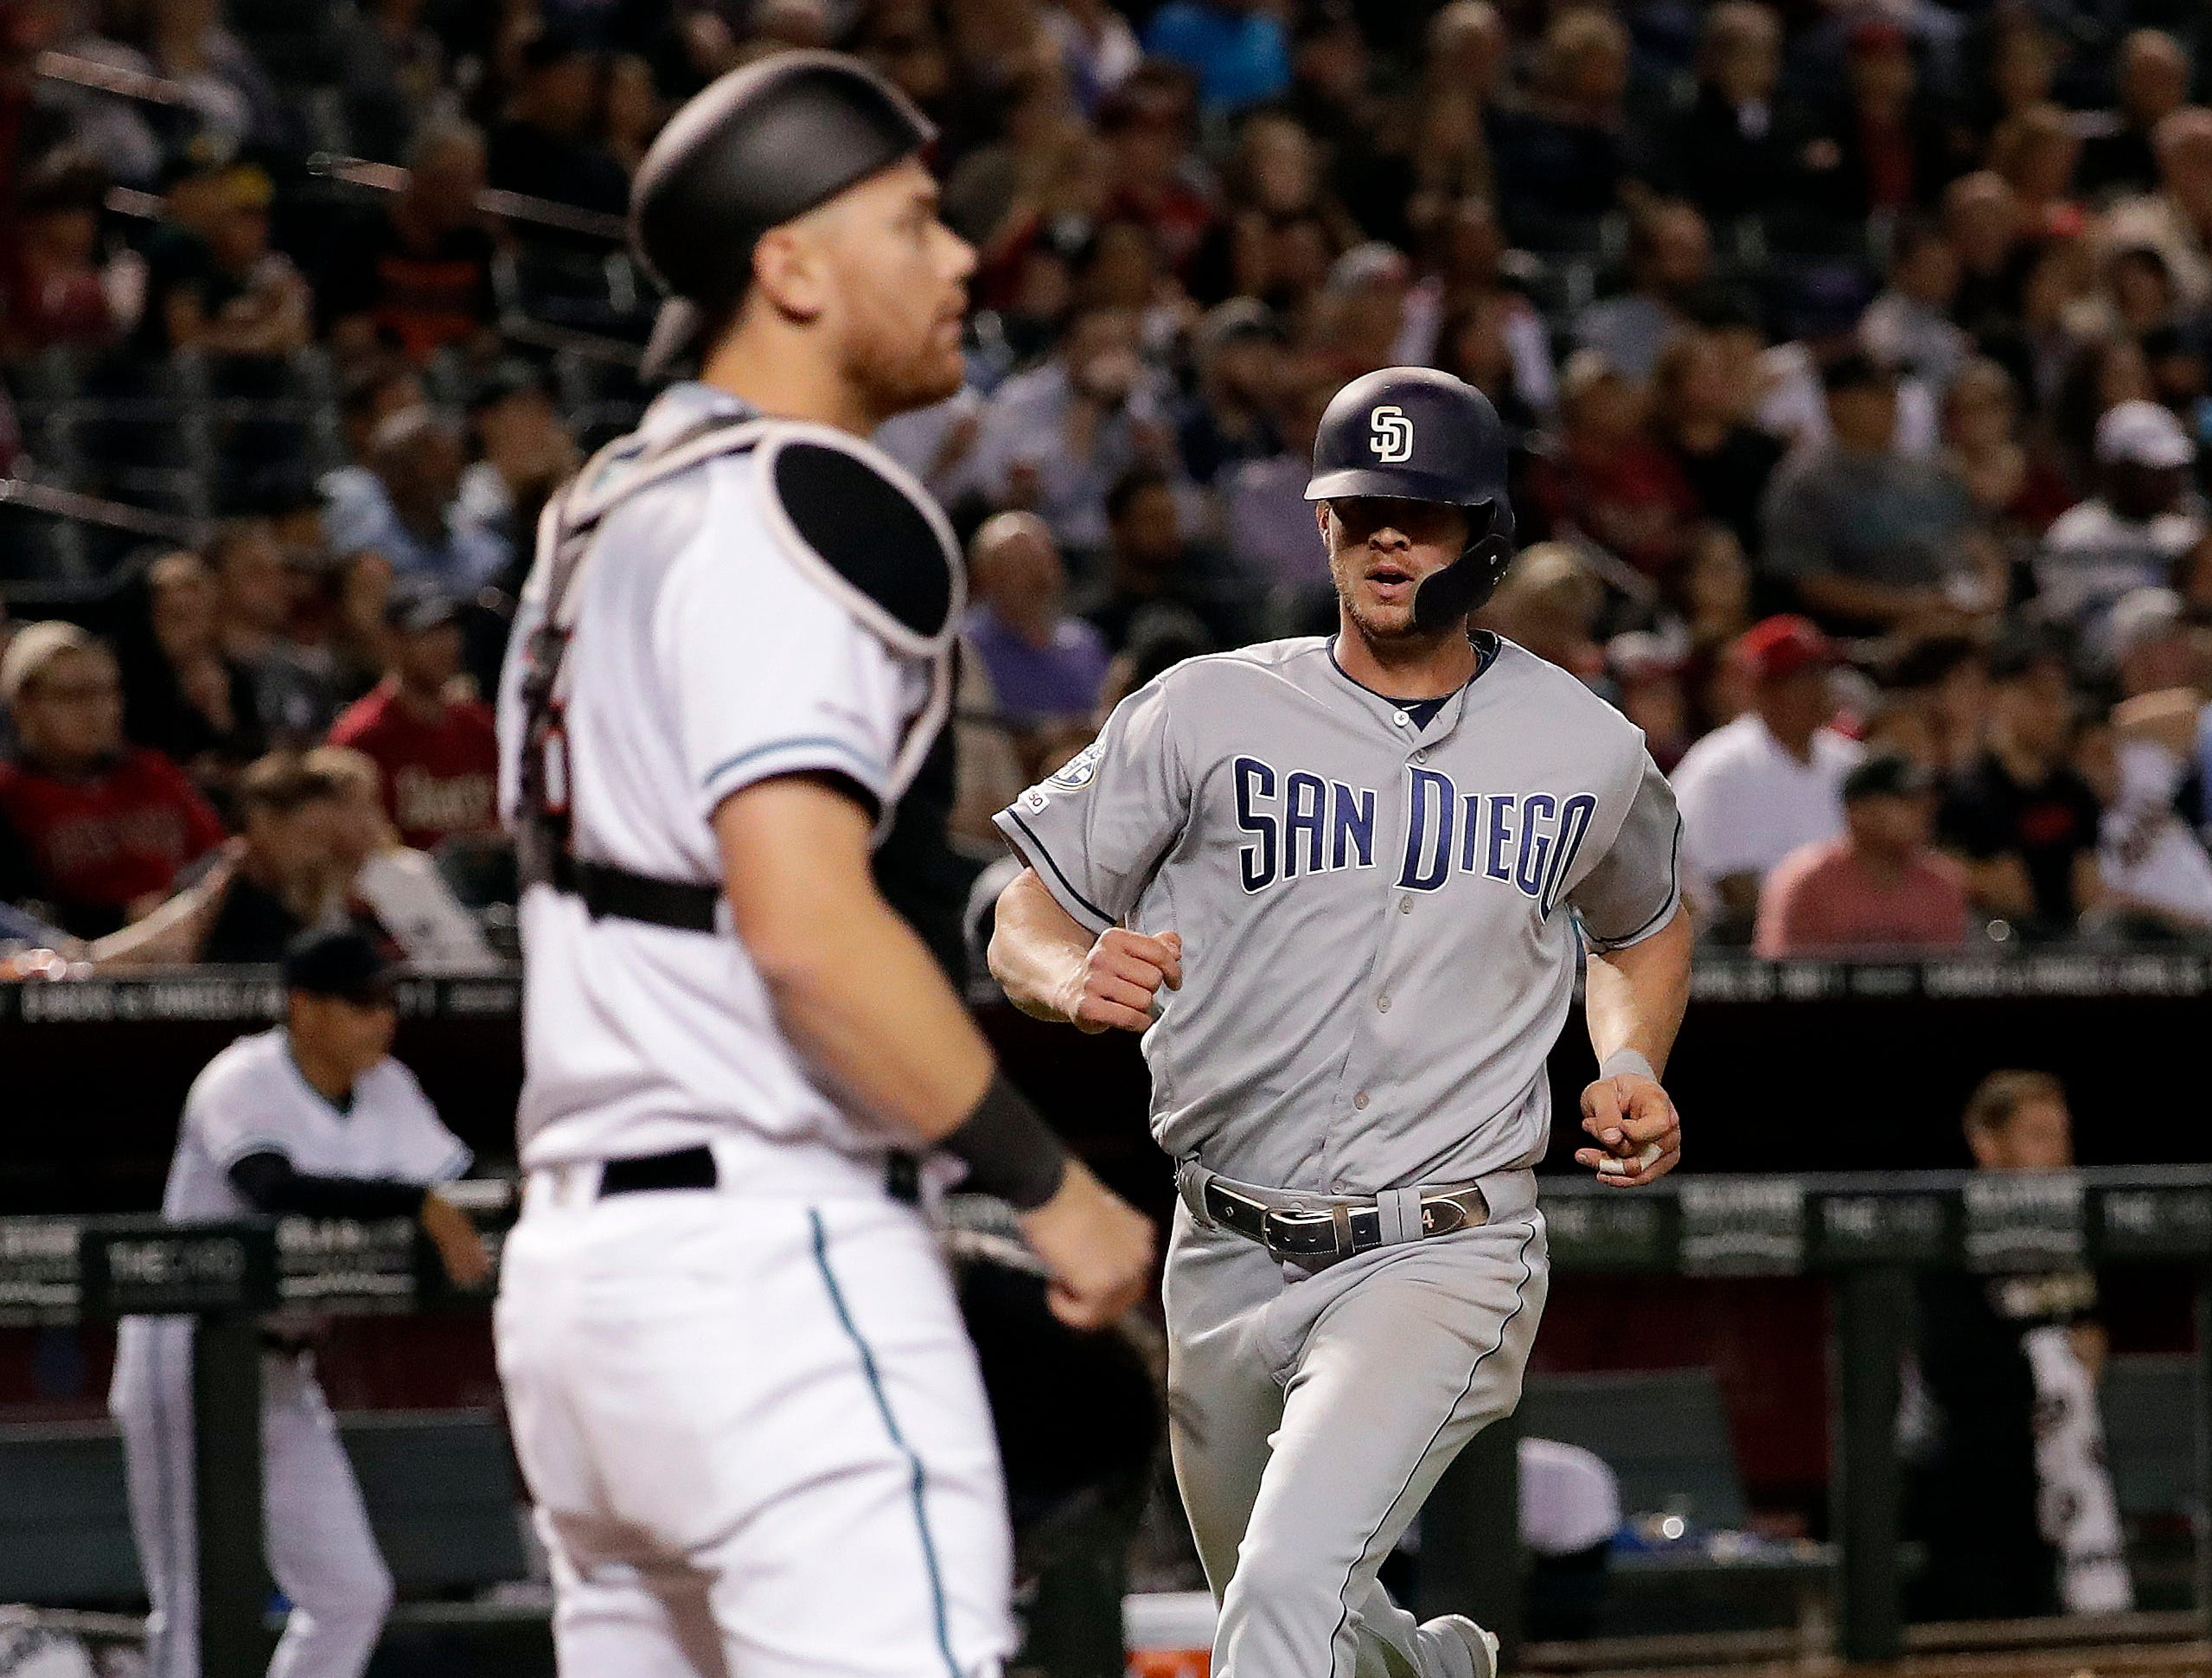 San Diego Padres Wil Myers scores on a double hit by Fernando Tatis Jr. during the seventh inning of a baseball game as Arizona Diamondbacks catcher Carson Kelly waits for the throw, Friday, April 12, 2019, in Phoenix. (AP Photo/Matt York)